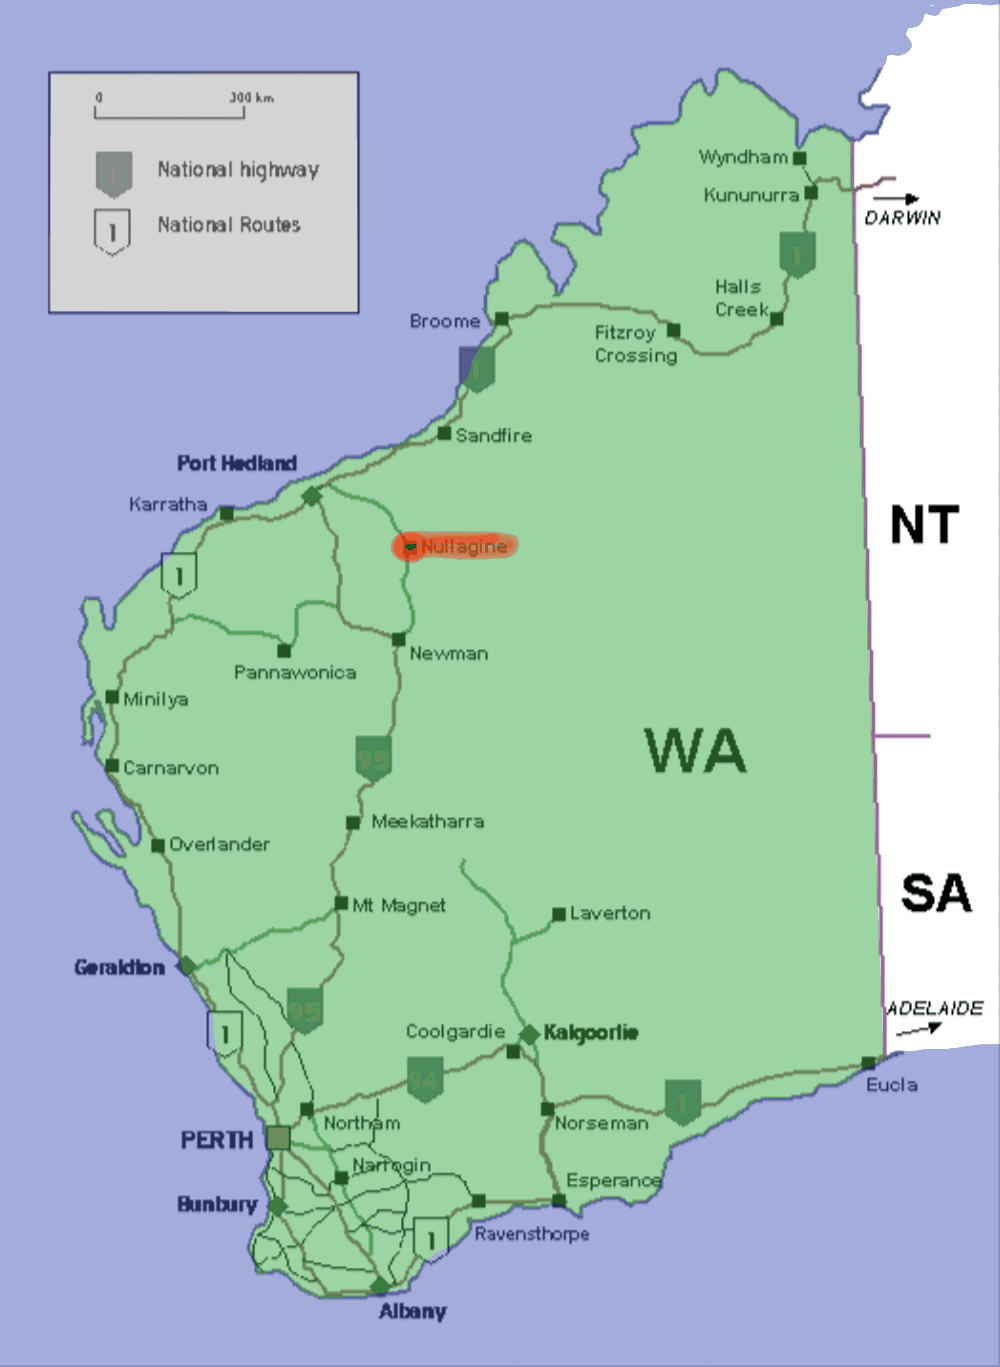 Nullagine Western Australia Wikipedia - Map of western australian towns